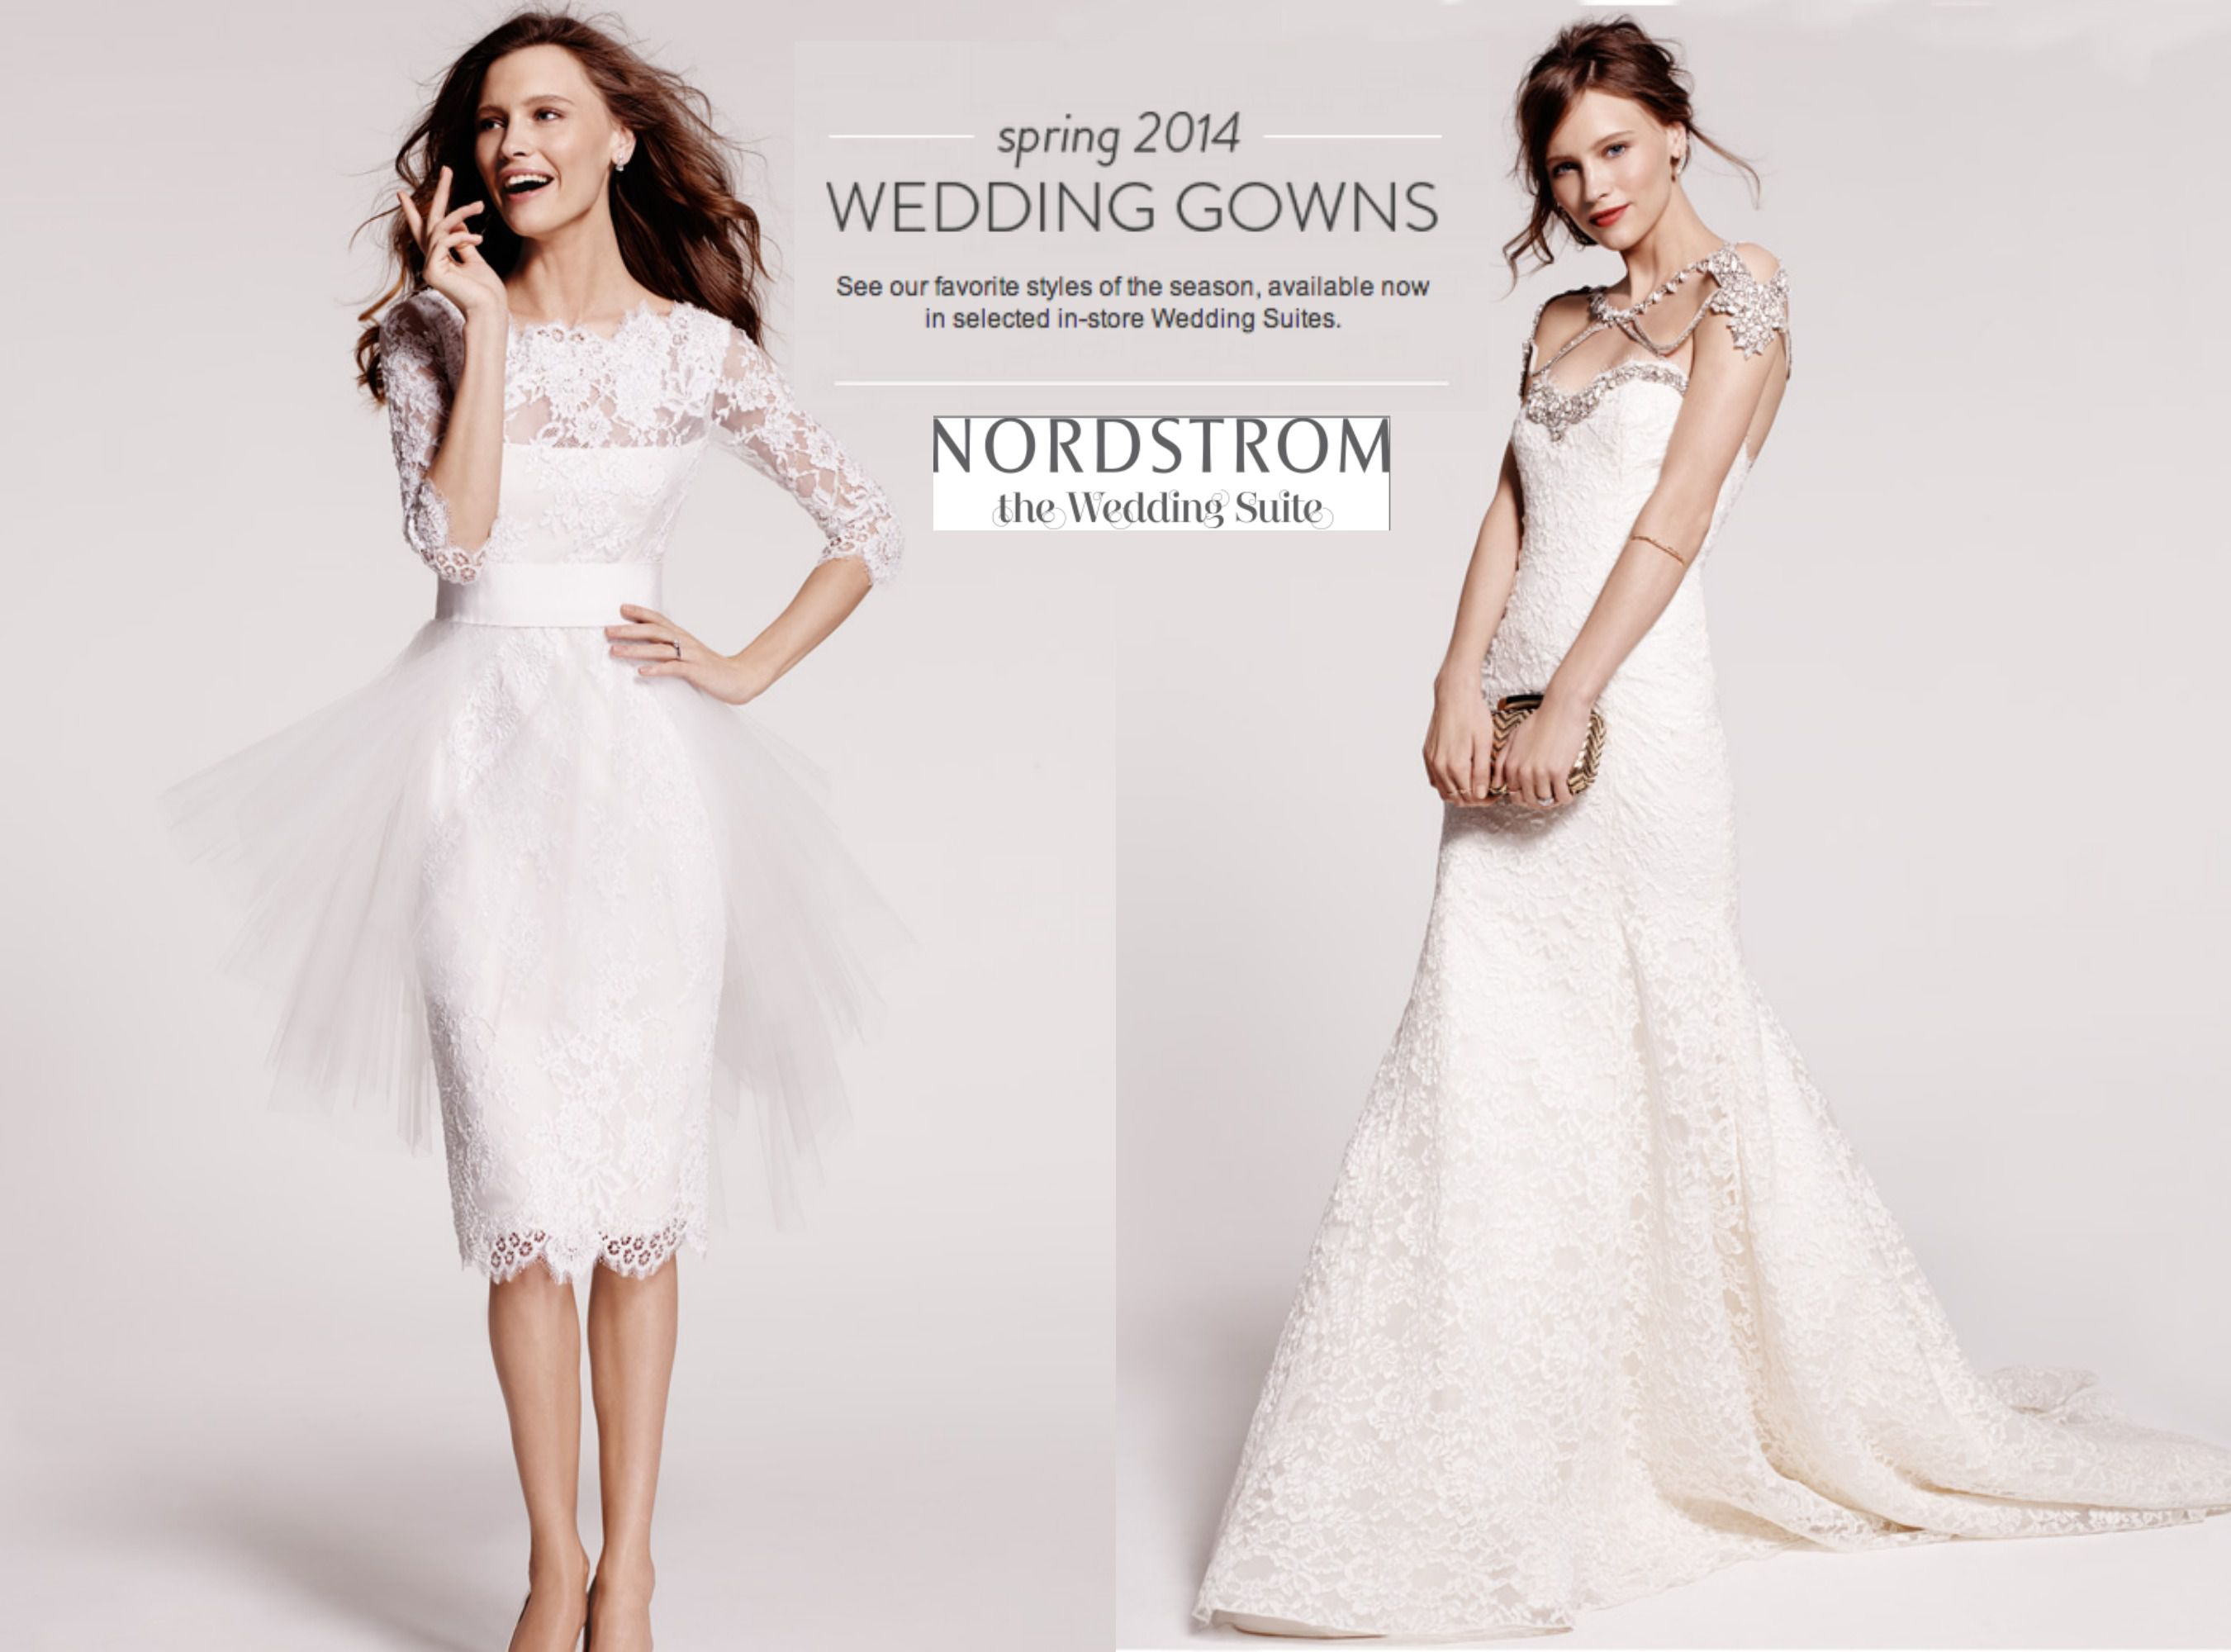 Nordstrom wedding suite spring preview rustic wedding chic for Nordstrom dresses for wedding